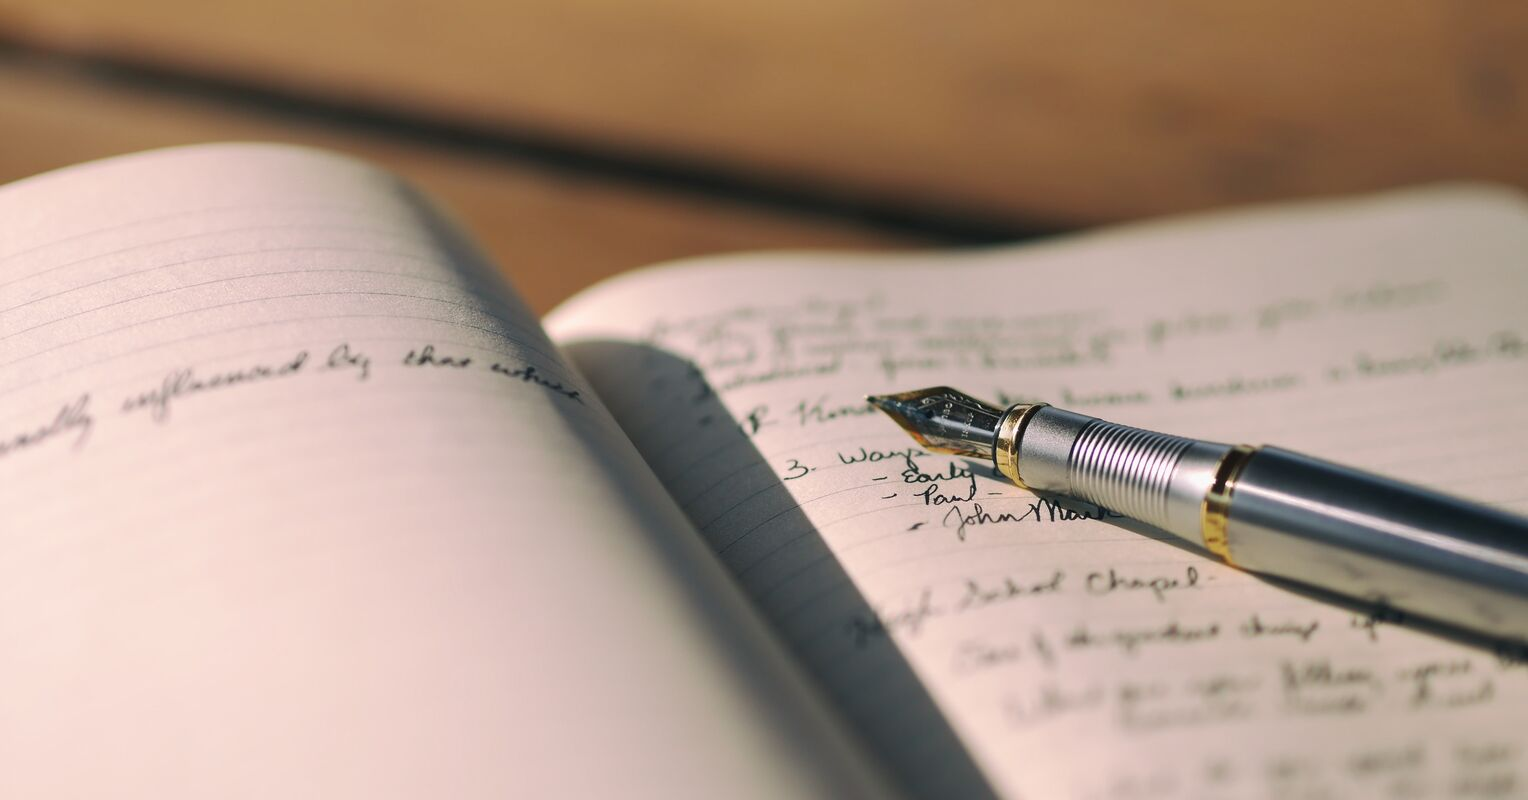 psychologytoday.com - Stephanie A. Sarkis Ph.D. - How to Start Journaling for Better Mental Health